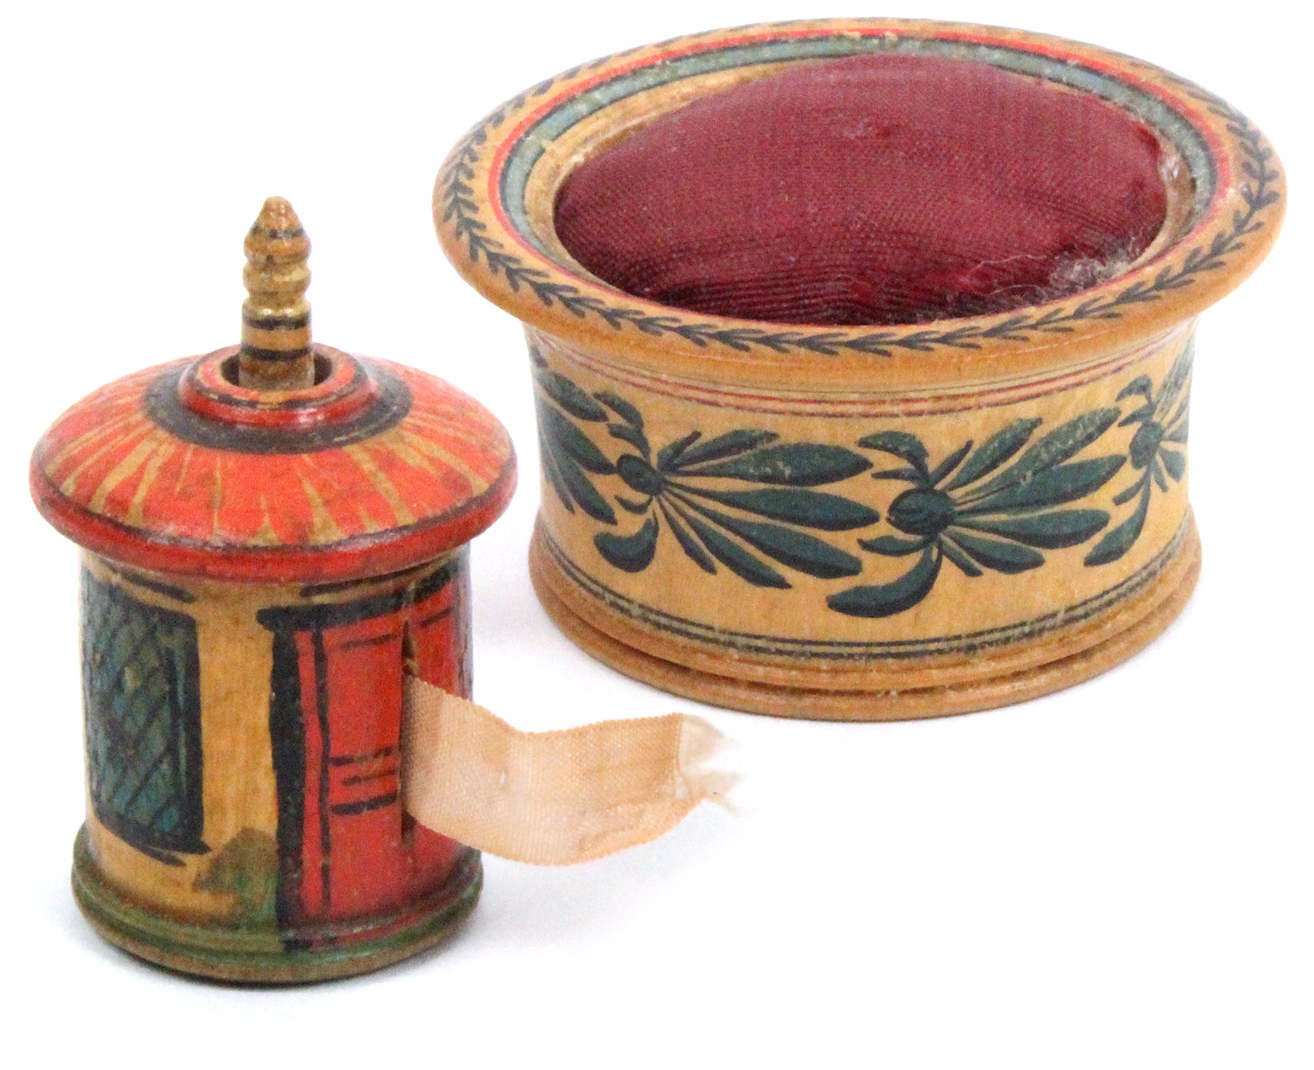 Lot 17 - An early painted Tunbridge ware pin cushion and a tape measure, the circular pin cushion with